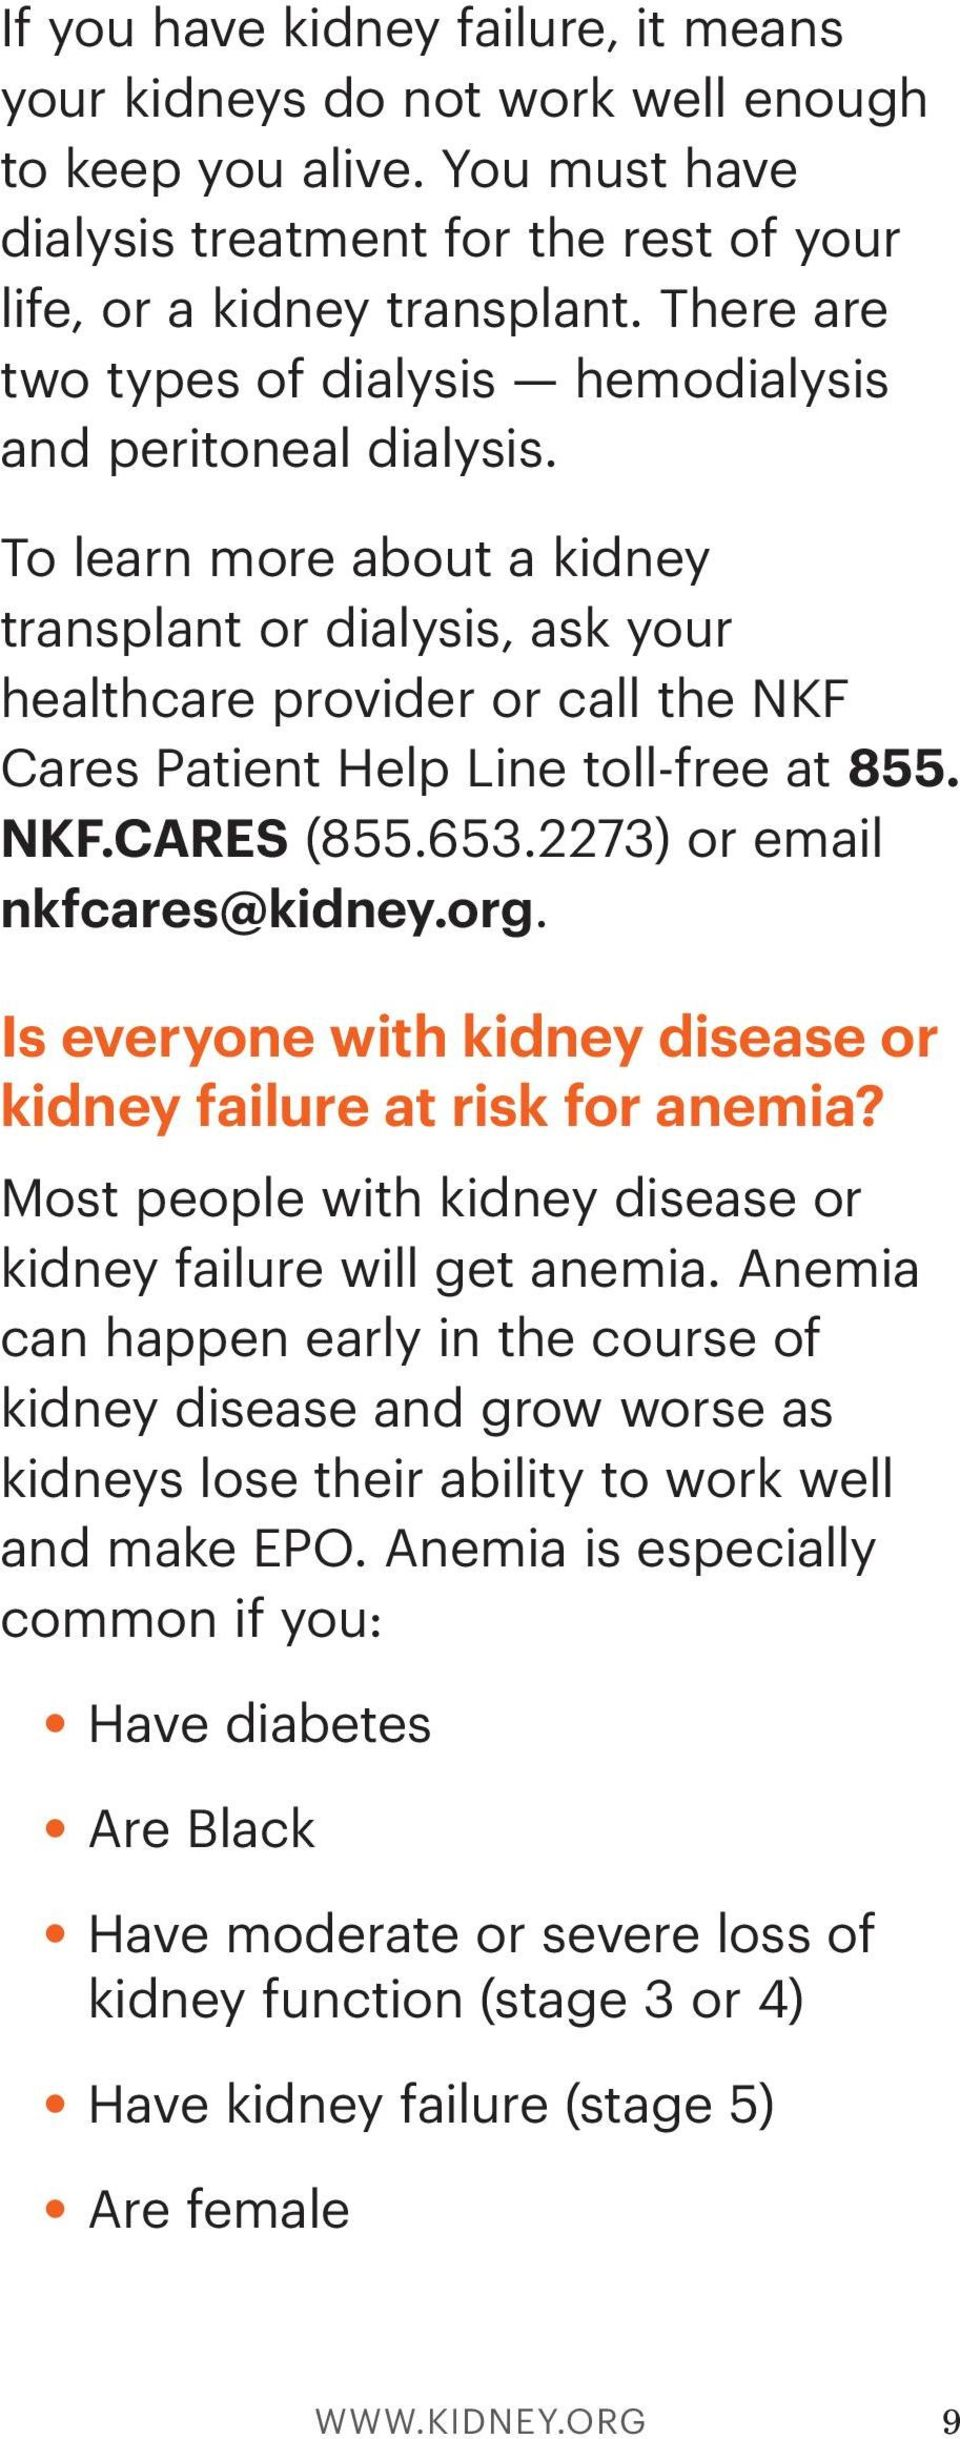 To learn more about a kidney transplant or dialysis, ask your healthcare provider or call the NKF Cares Patient Help Line toll-free at 855. NKF.CARES (855.653.2273) or email nkfcares@kidney.org.